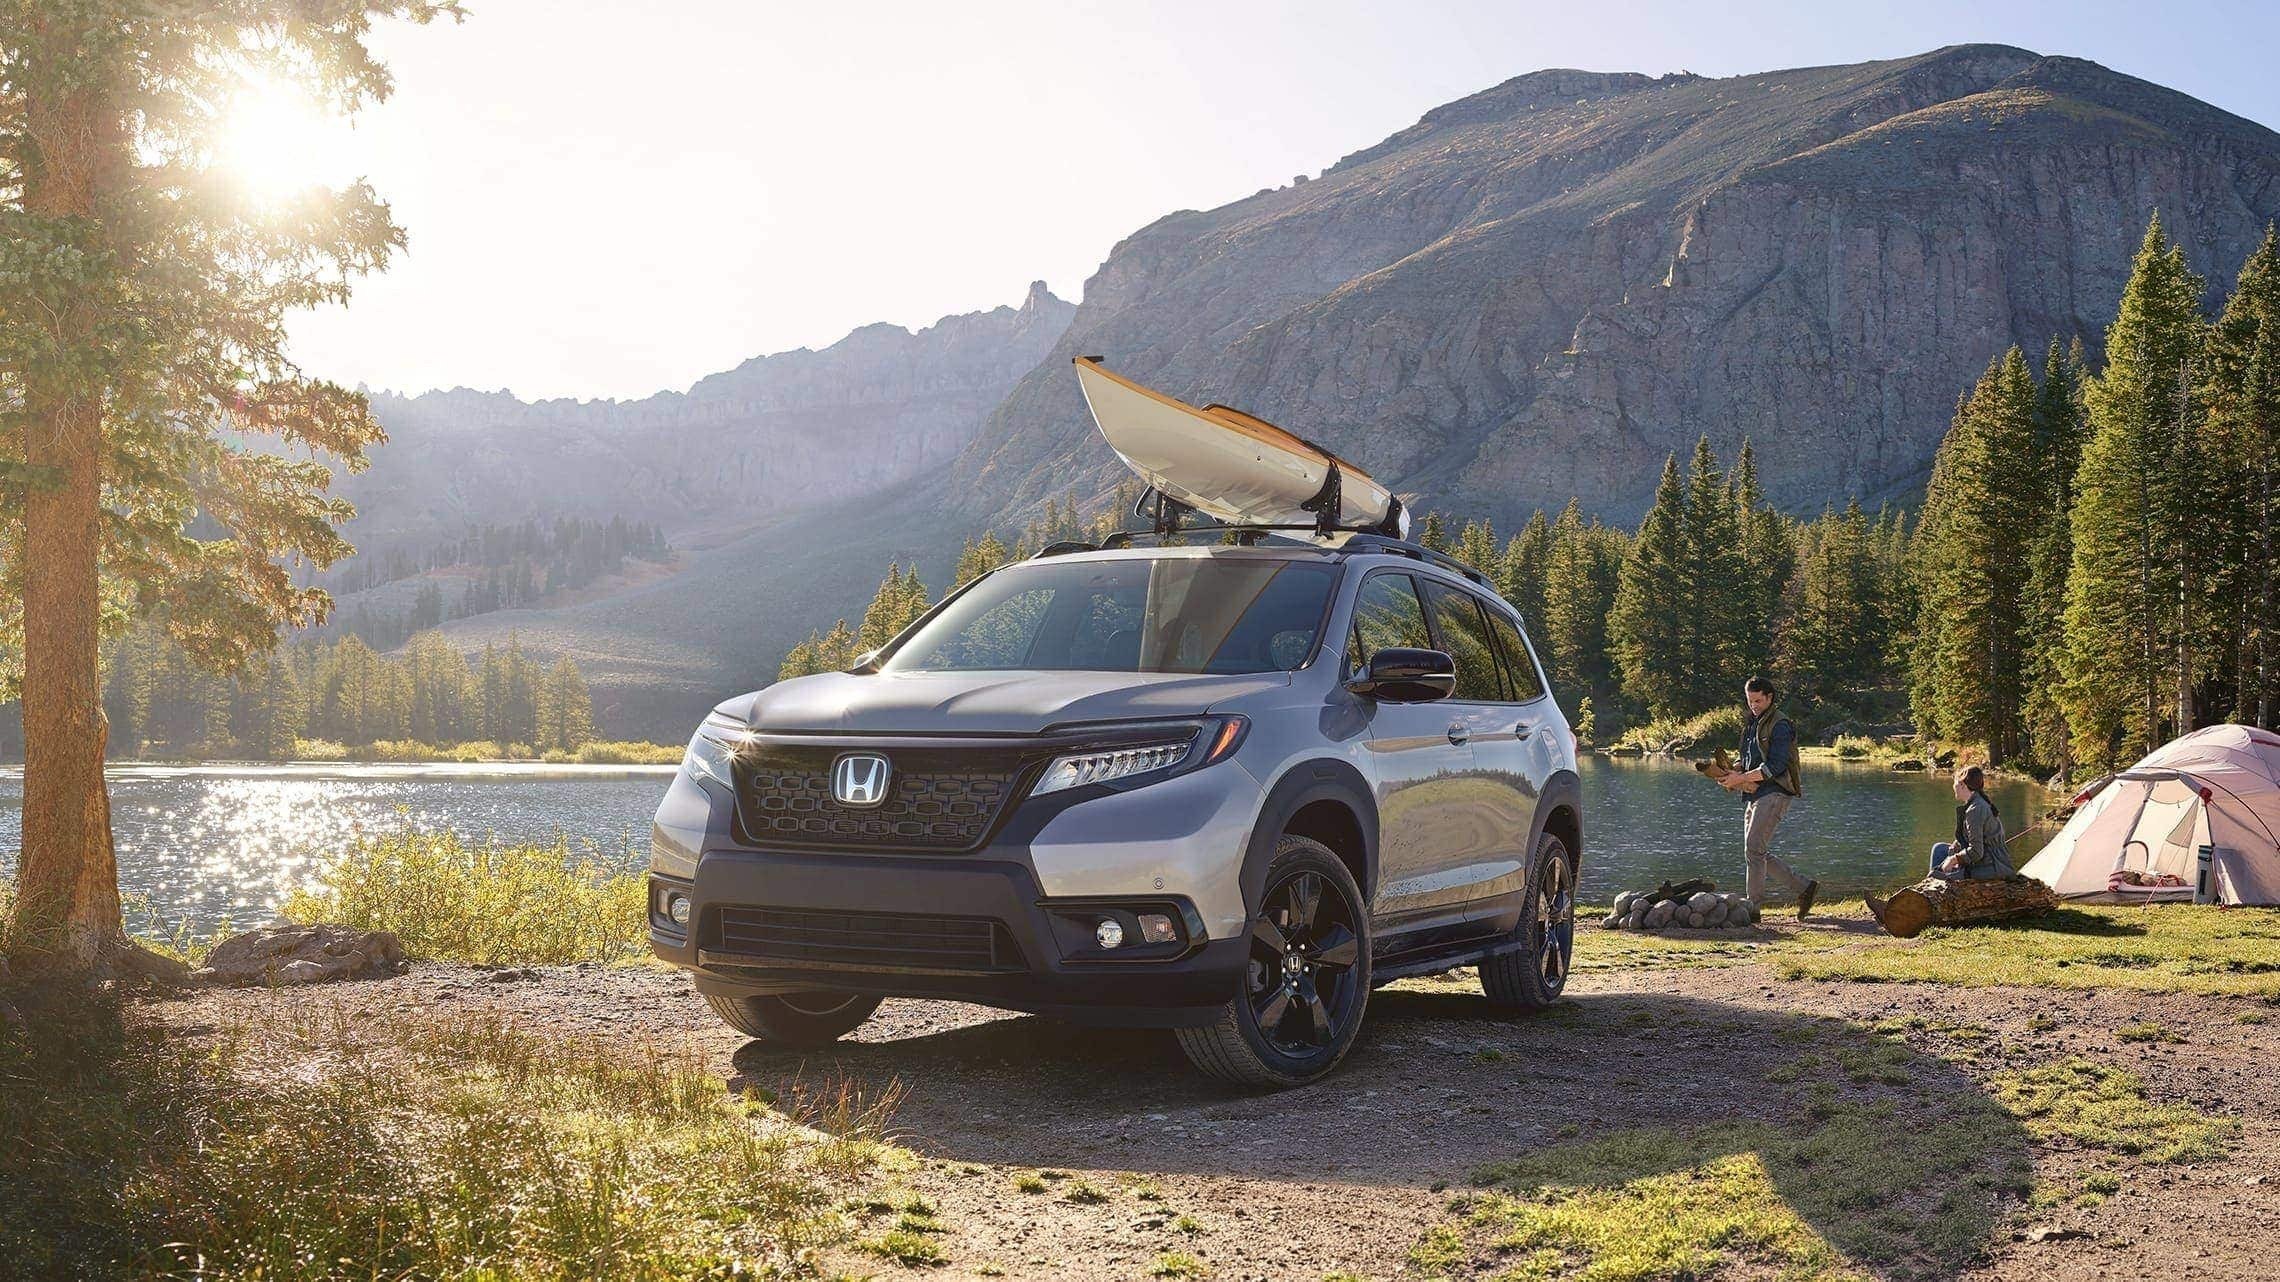 Honda Passport Gearing up for Adventure